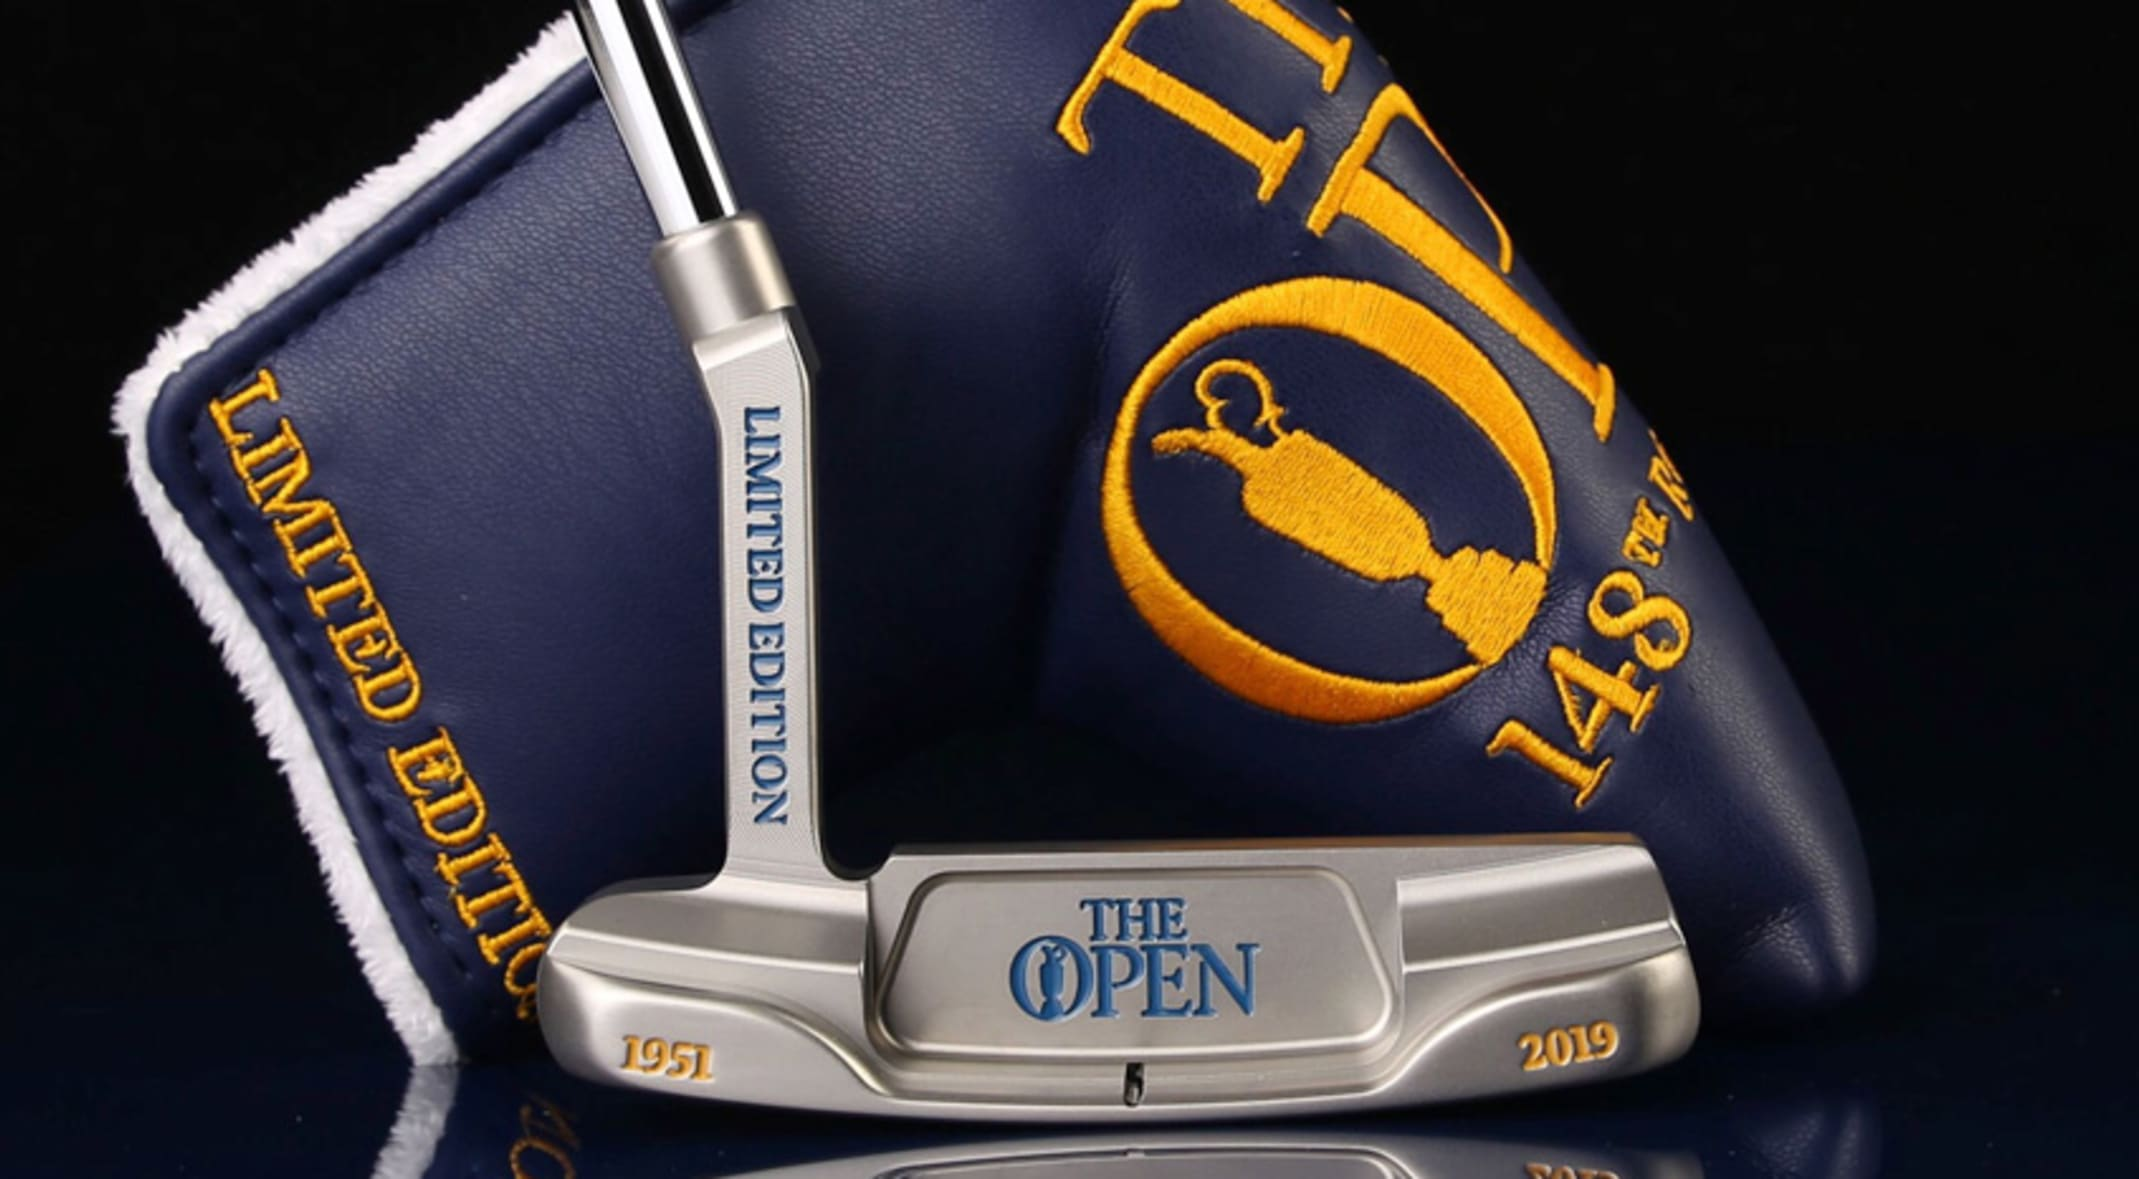 Custom Gear For The Open Championship At Royal Portrush